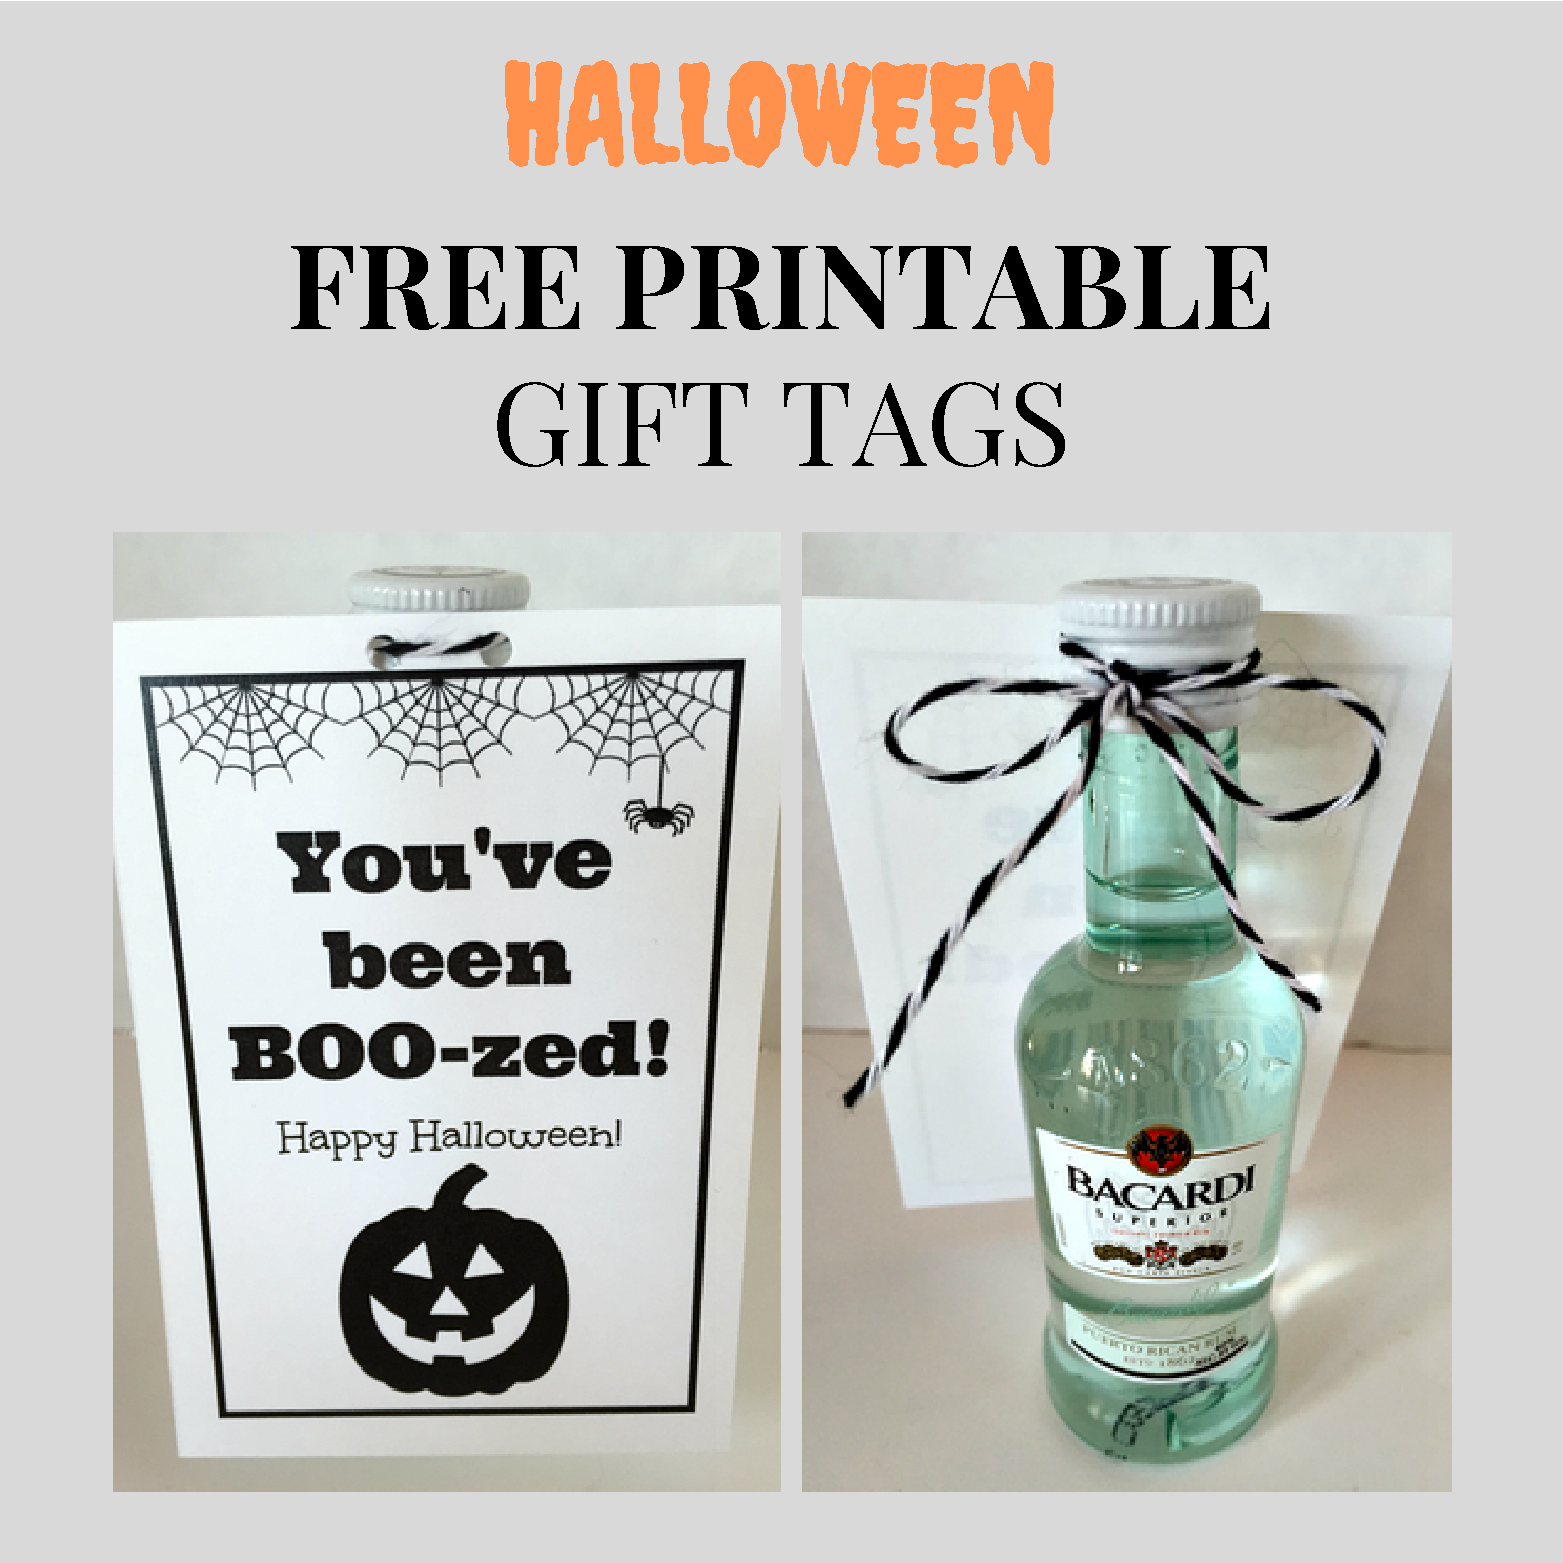 You Ve Been Boo Zed With Free Printable Rko Ideas Galore By Karen